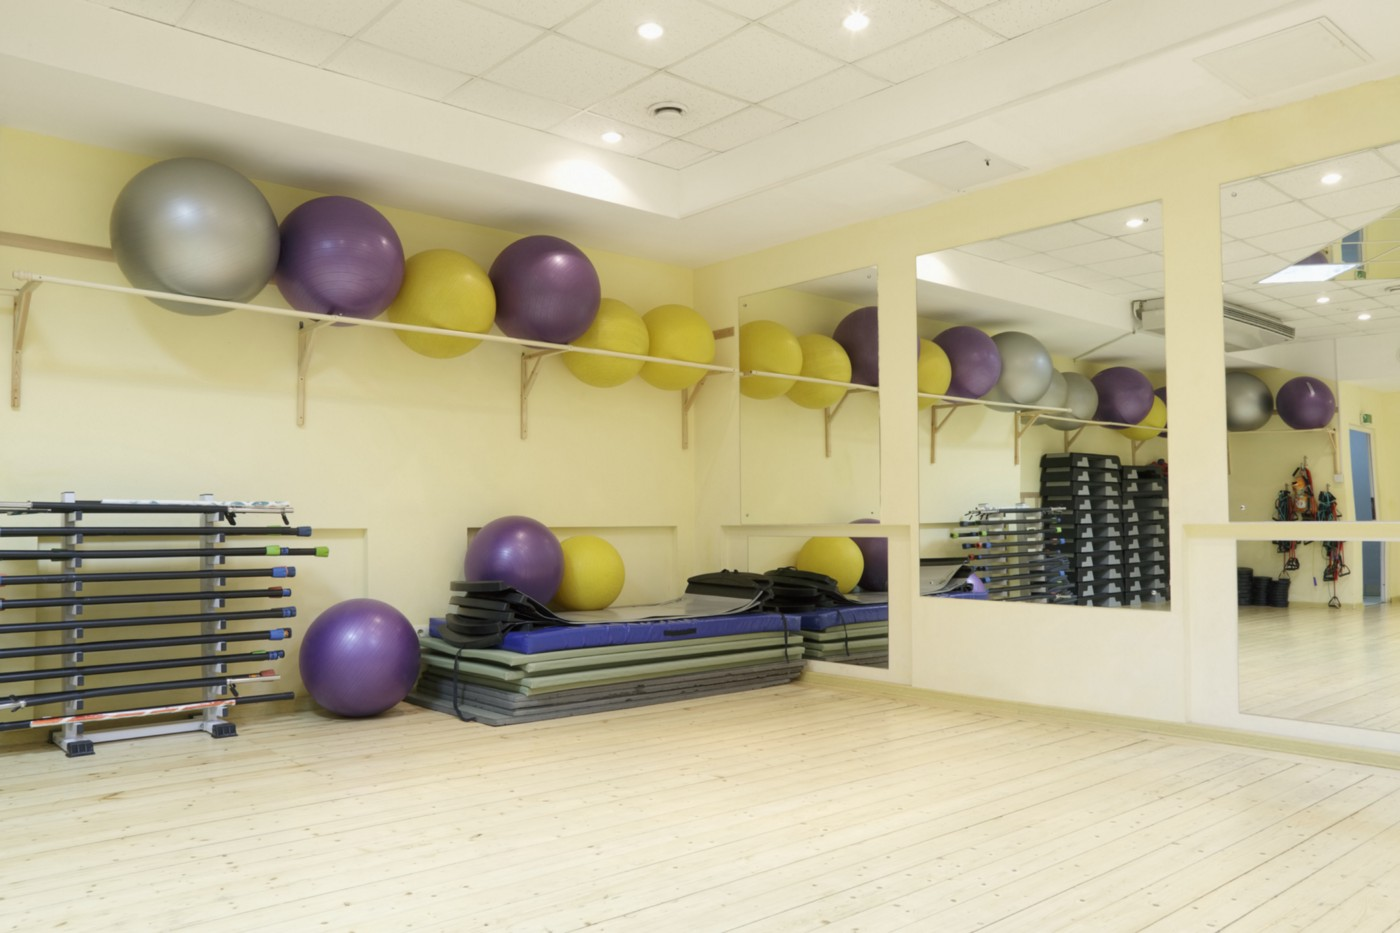 A photo of fitness balls on a rack at the gym.